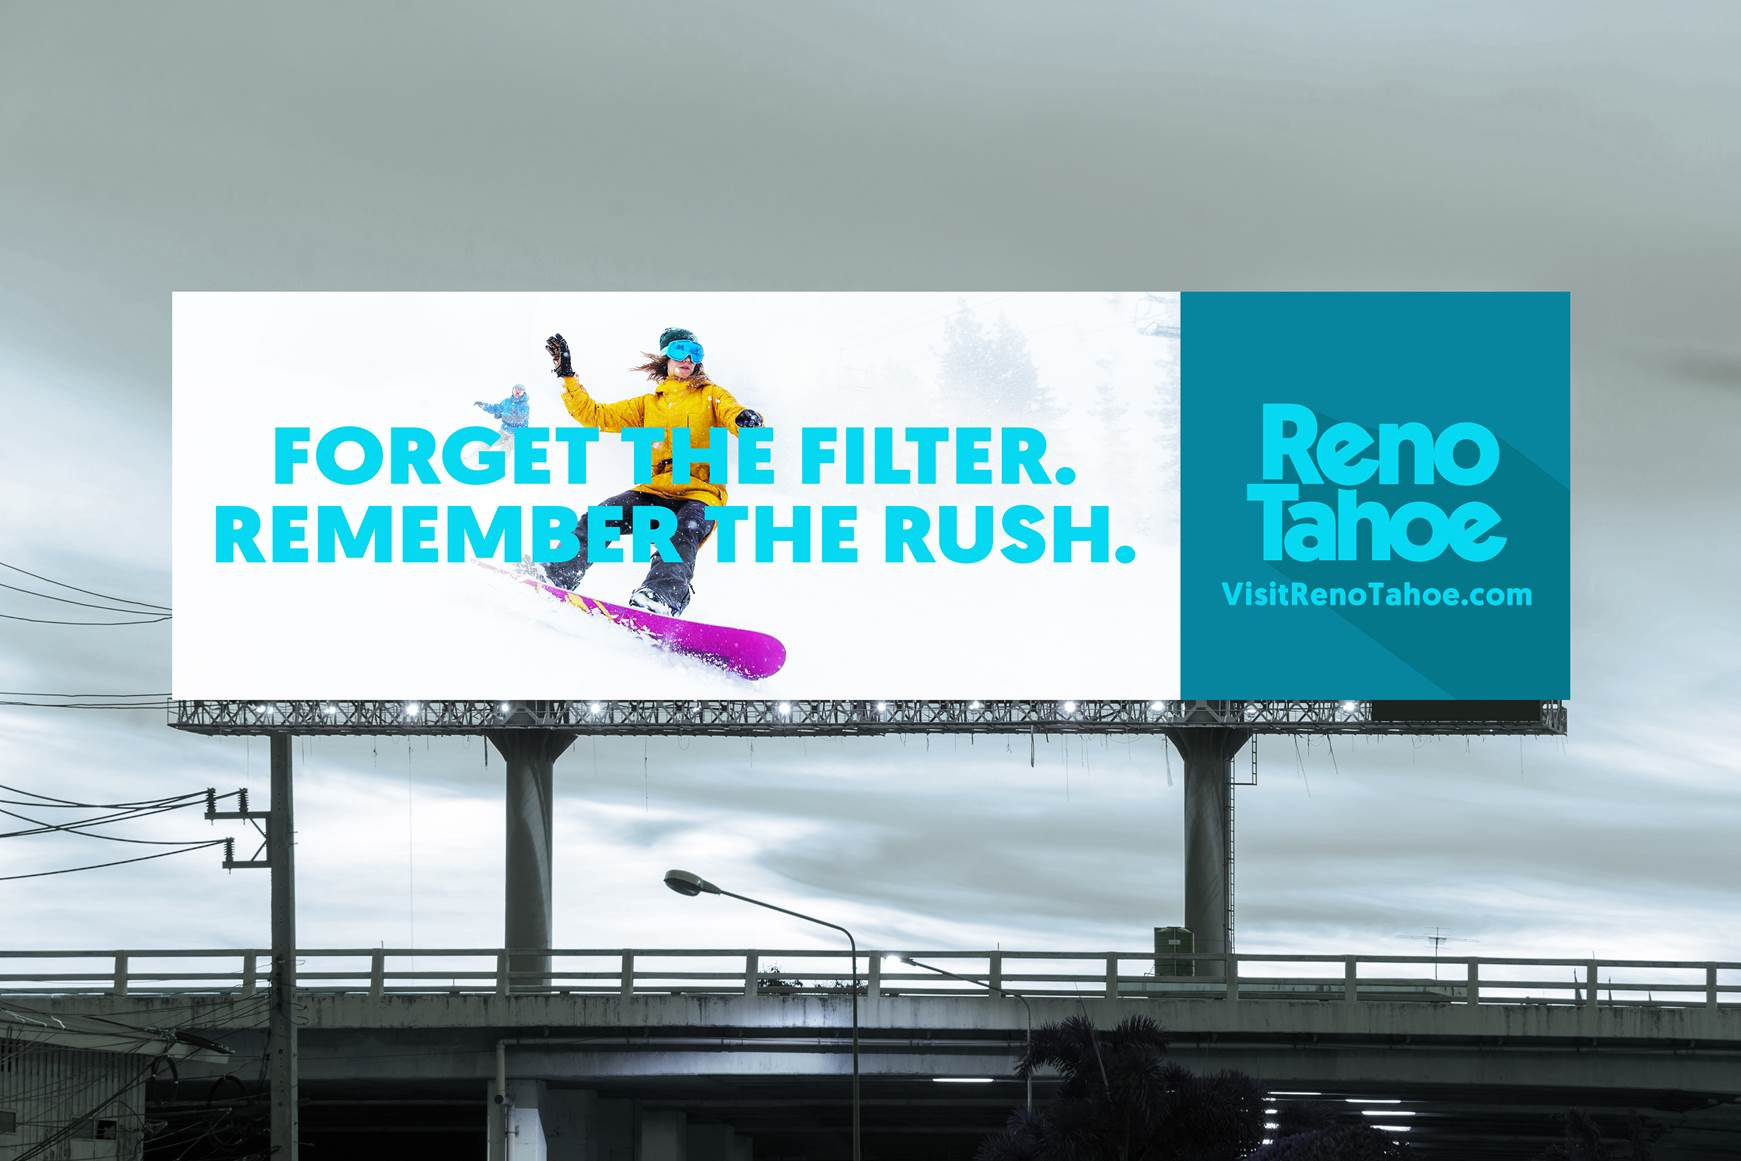 """FORGET THE FILTER, REMEMBER THE RUSH"" is one of the billboards that will be seen throughout the Bay Area, Los Angeles and Seattle area."